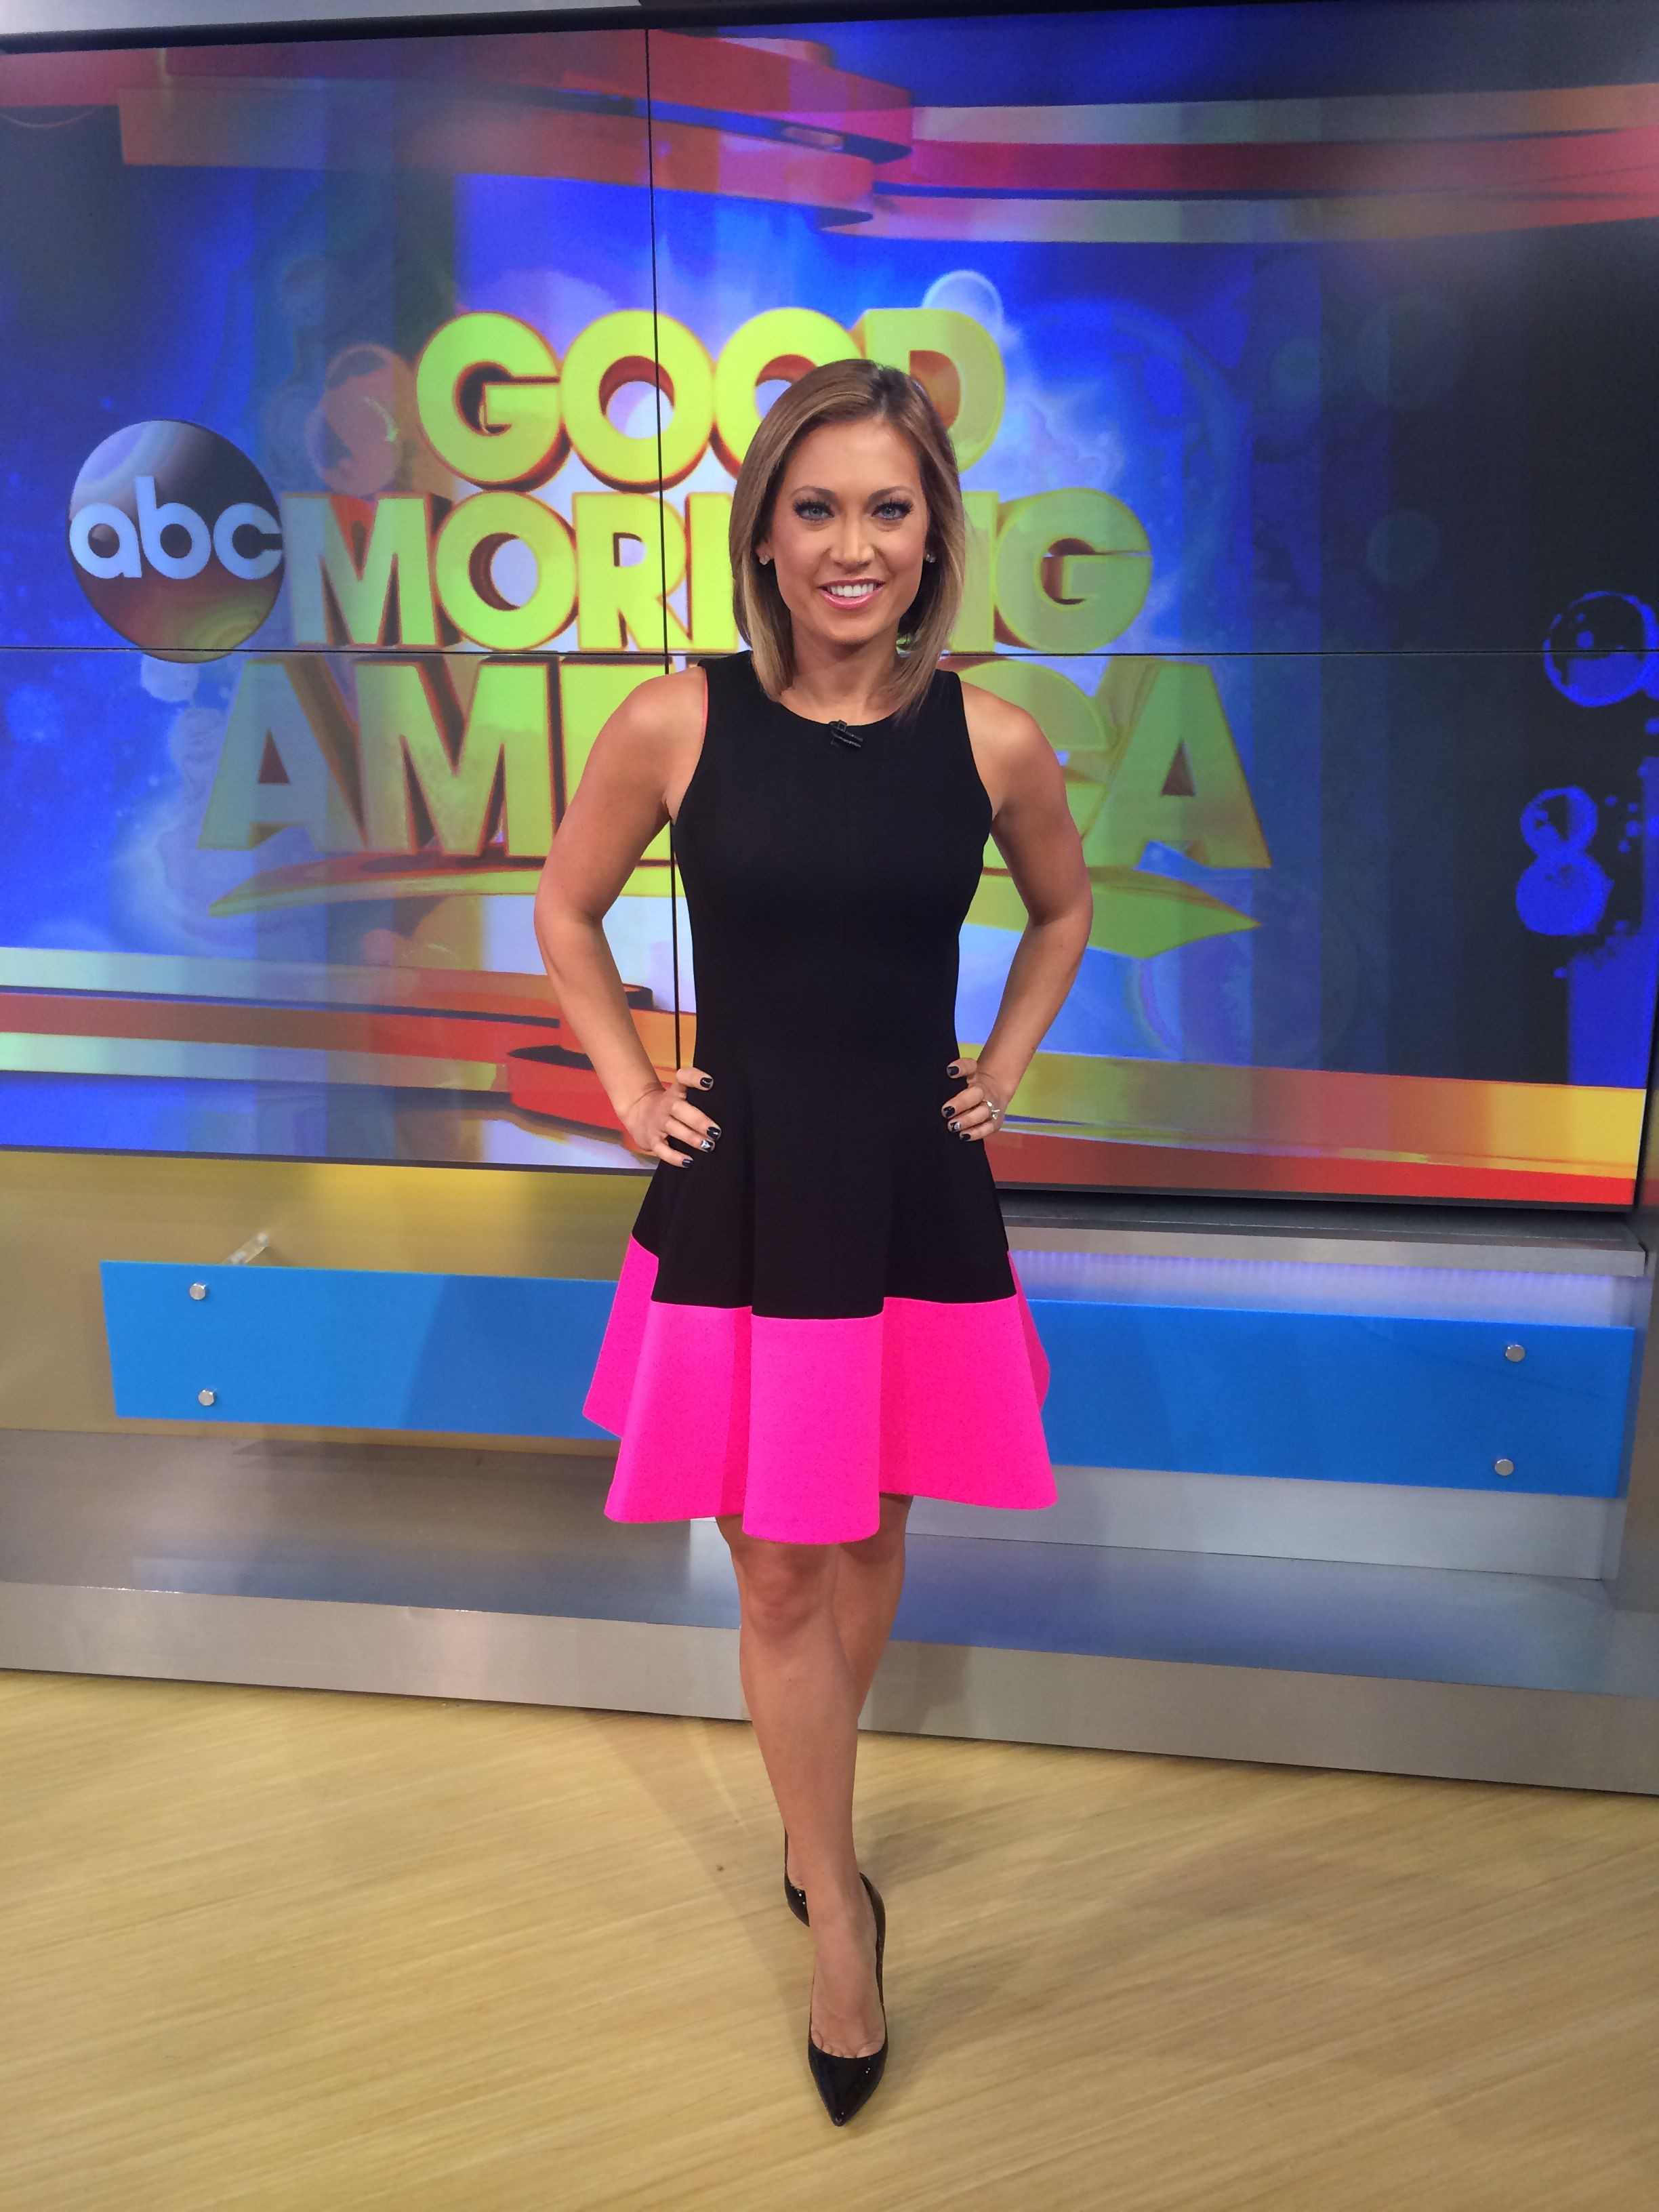 Discontinued Ikea Products List Good Morning America Ginger Zee Wardrobe This Dress Is